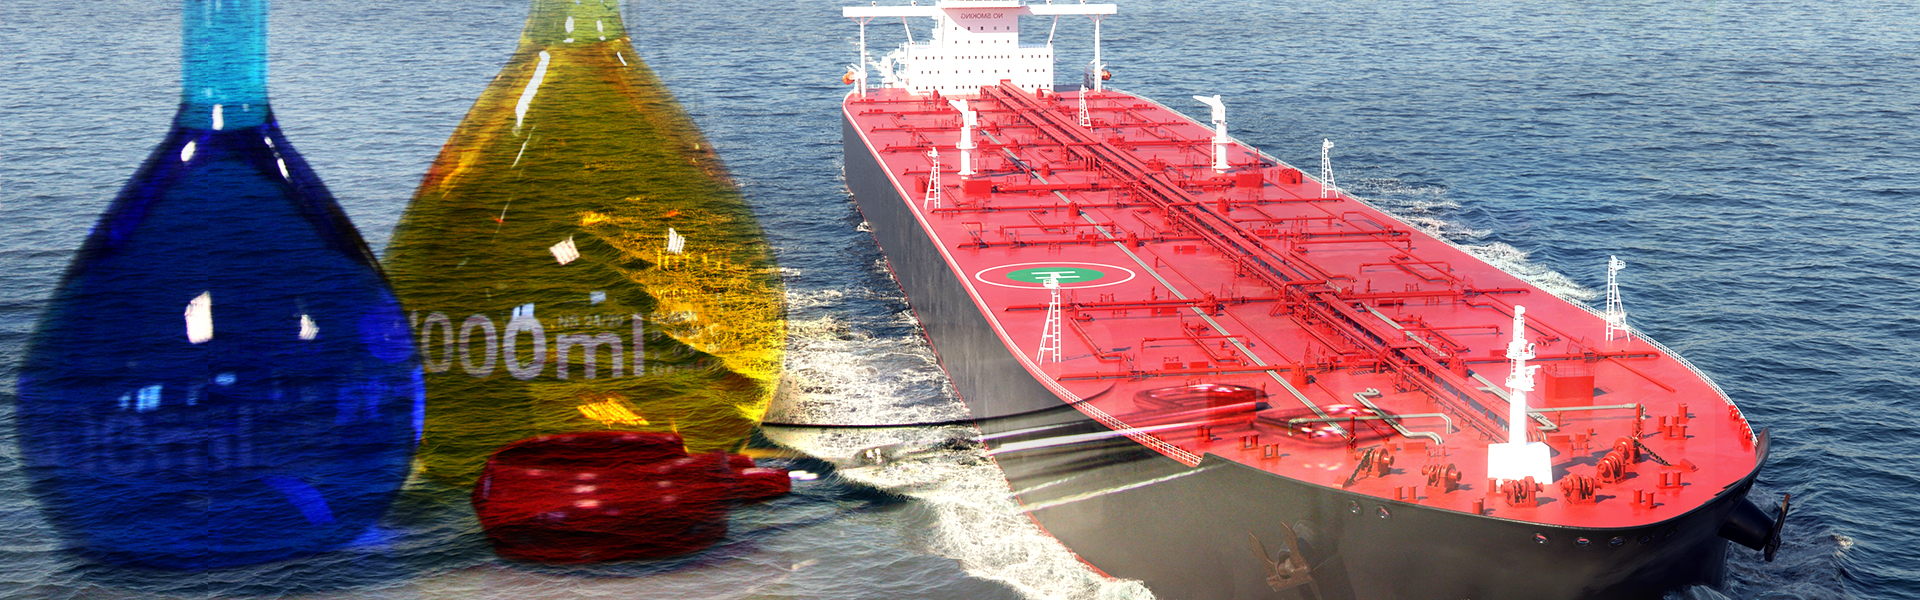 global offer of services and laboratory analysis proposing a wide variety of solutions for the refining and maritime transport sector Bunkering